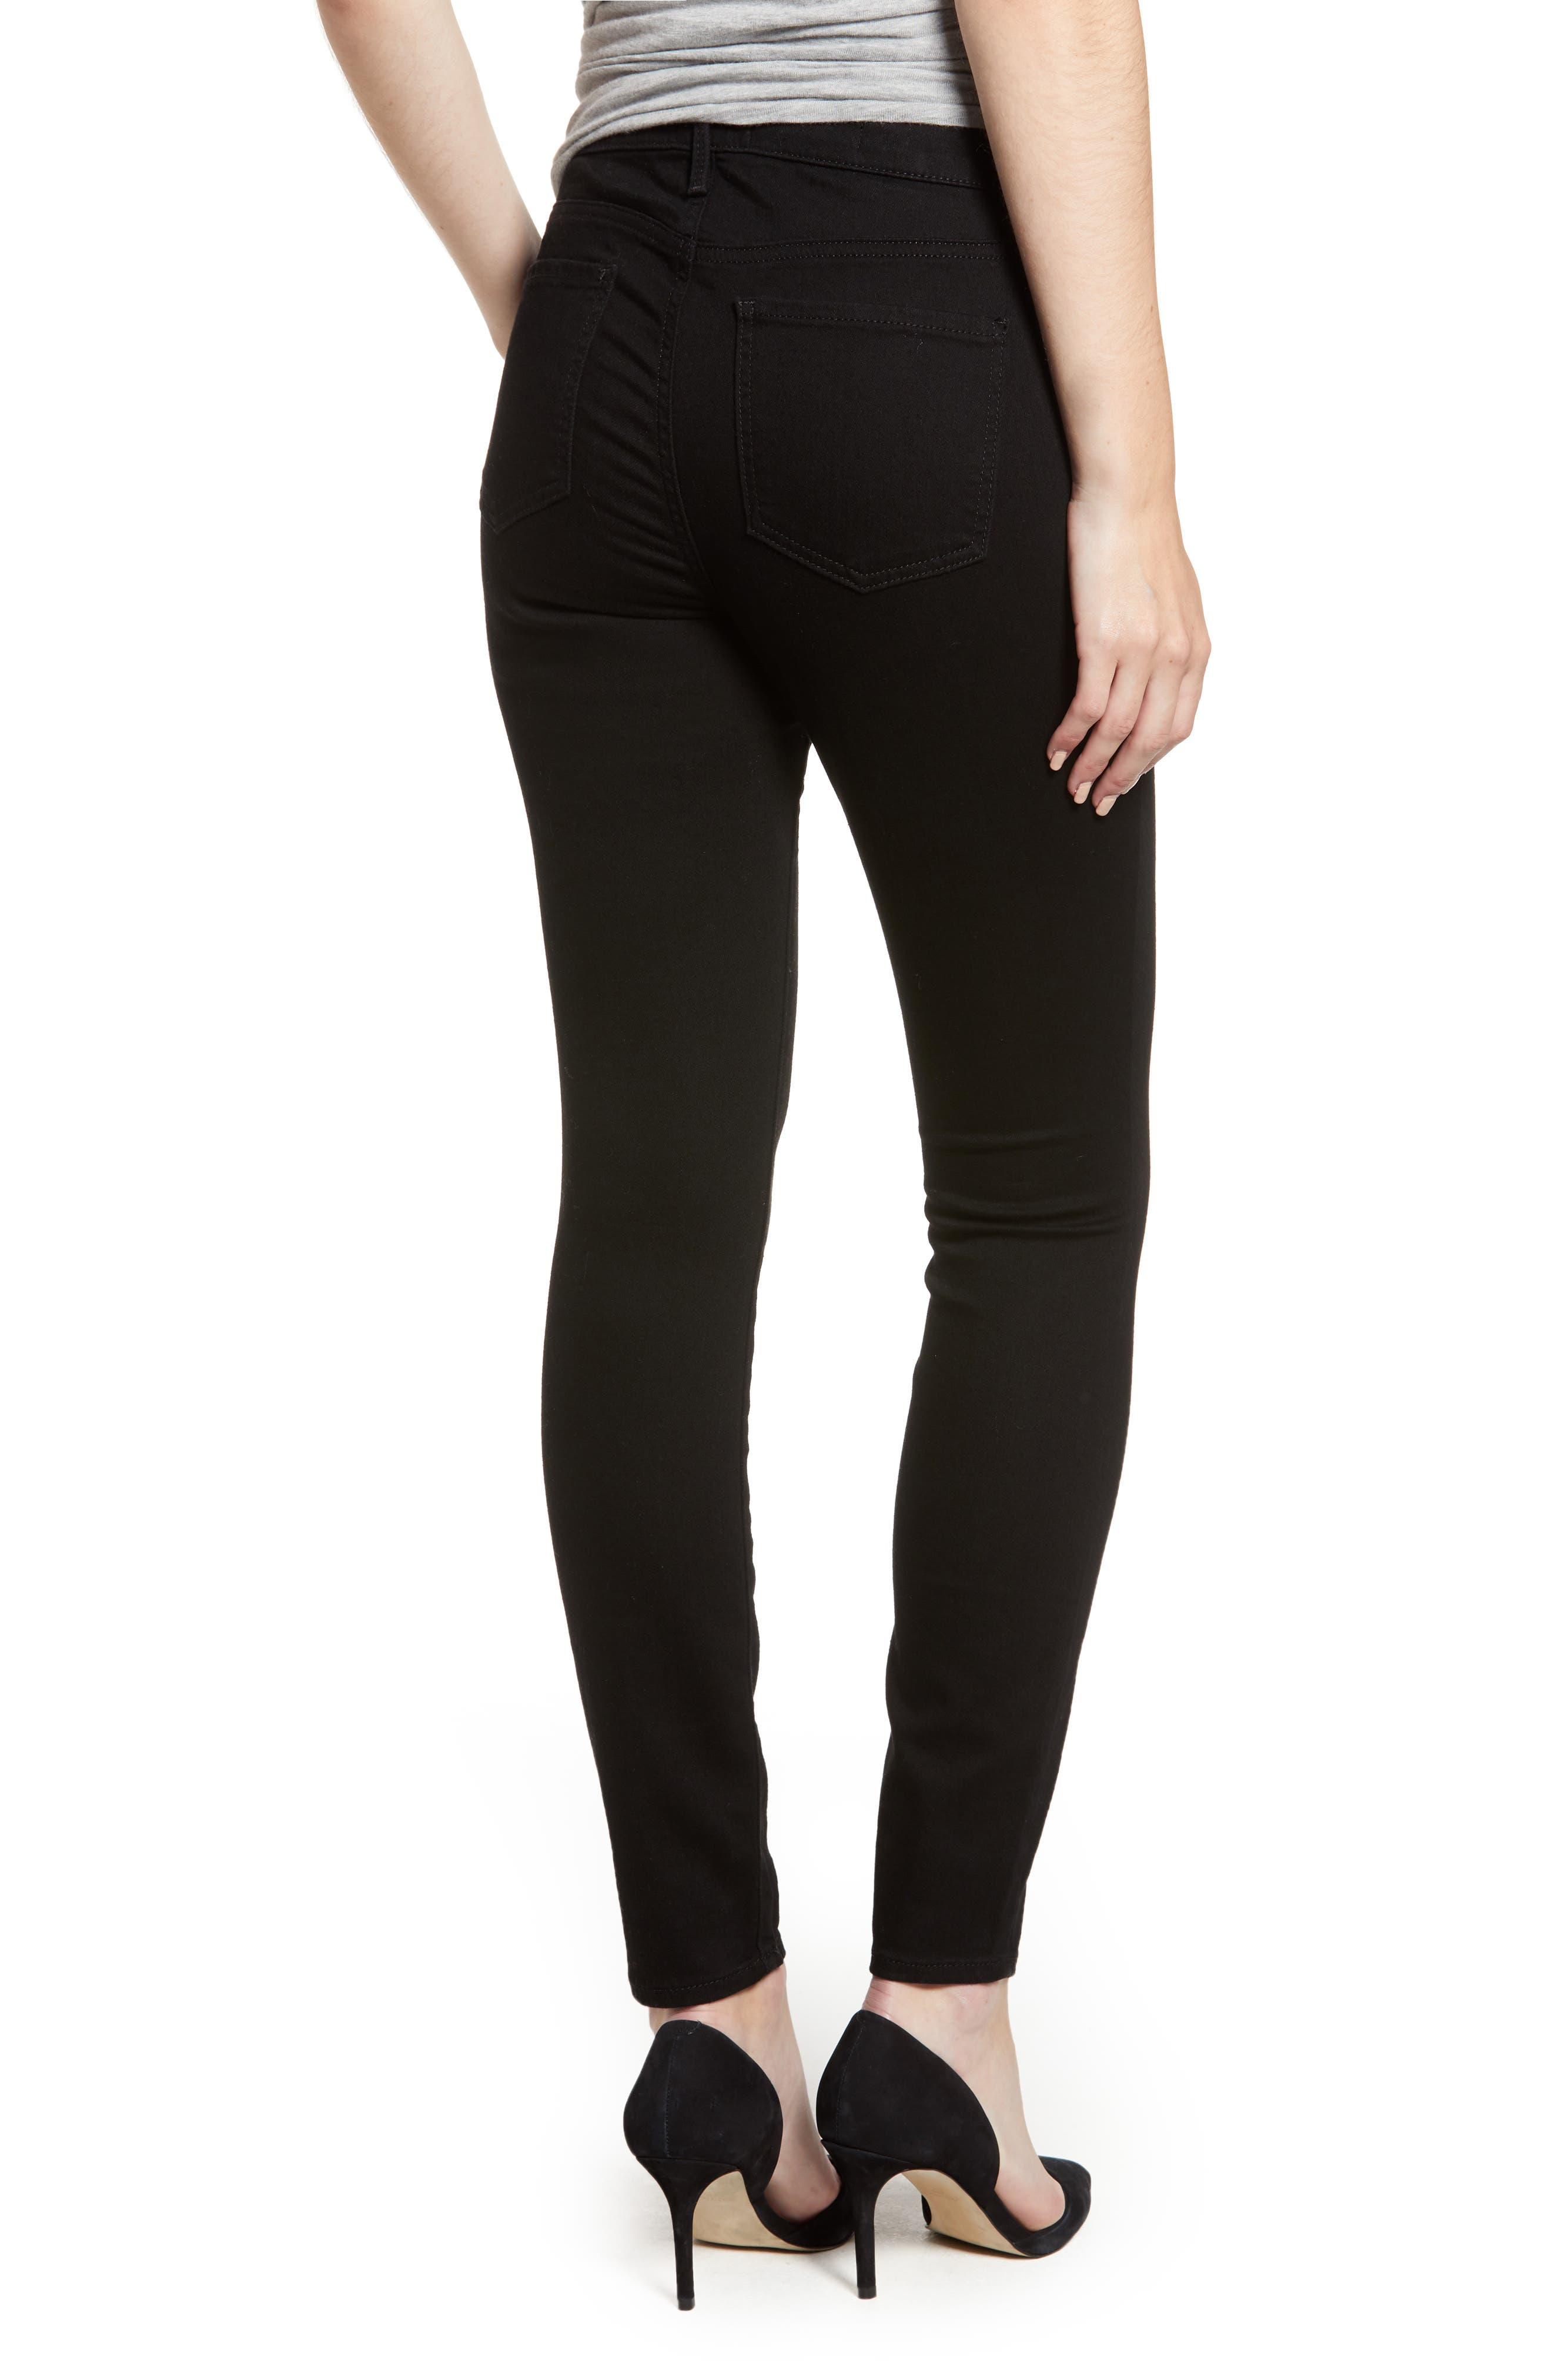 Ami High Waist Stretch Super Skinny Jeans,                             Alternate thumbnail 2, color,                             BLACK